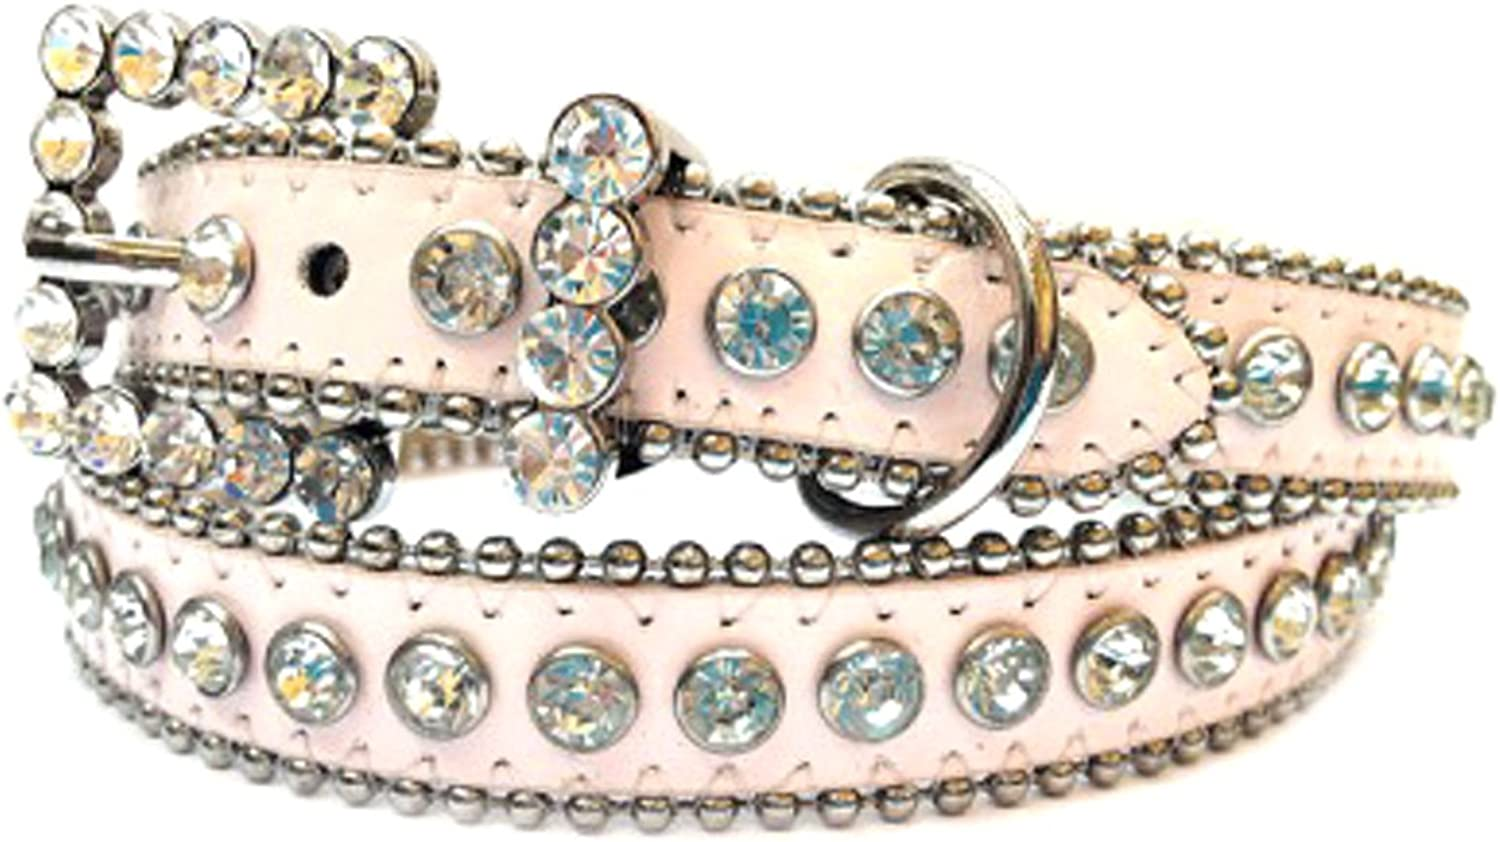 Light Pink Leather Belt, Decorated with High Quality Clear Rhinestones and Rhinestone Belt Buckle, Size M L